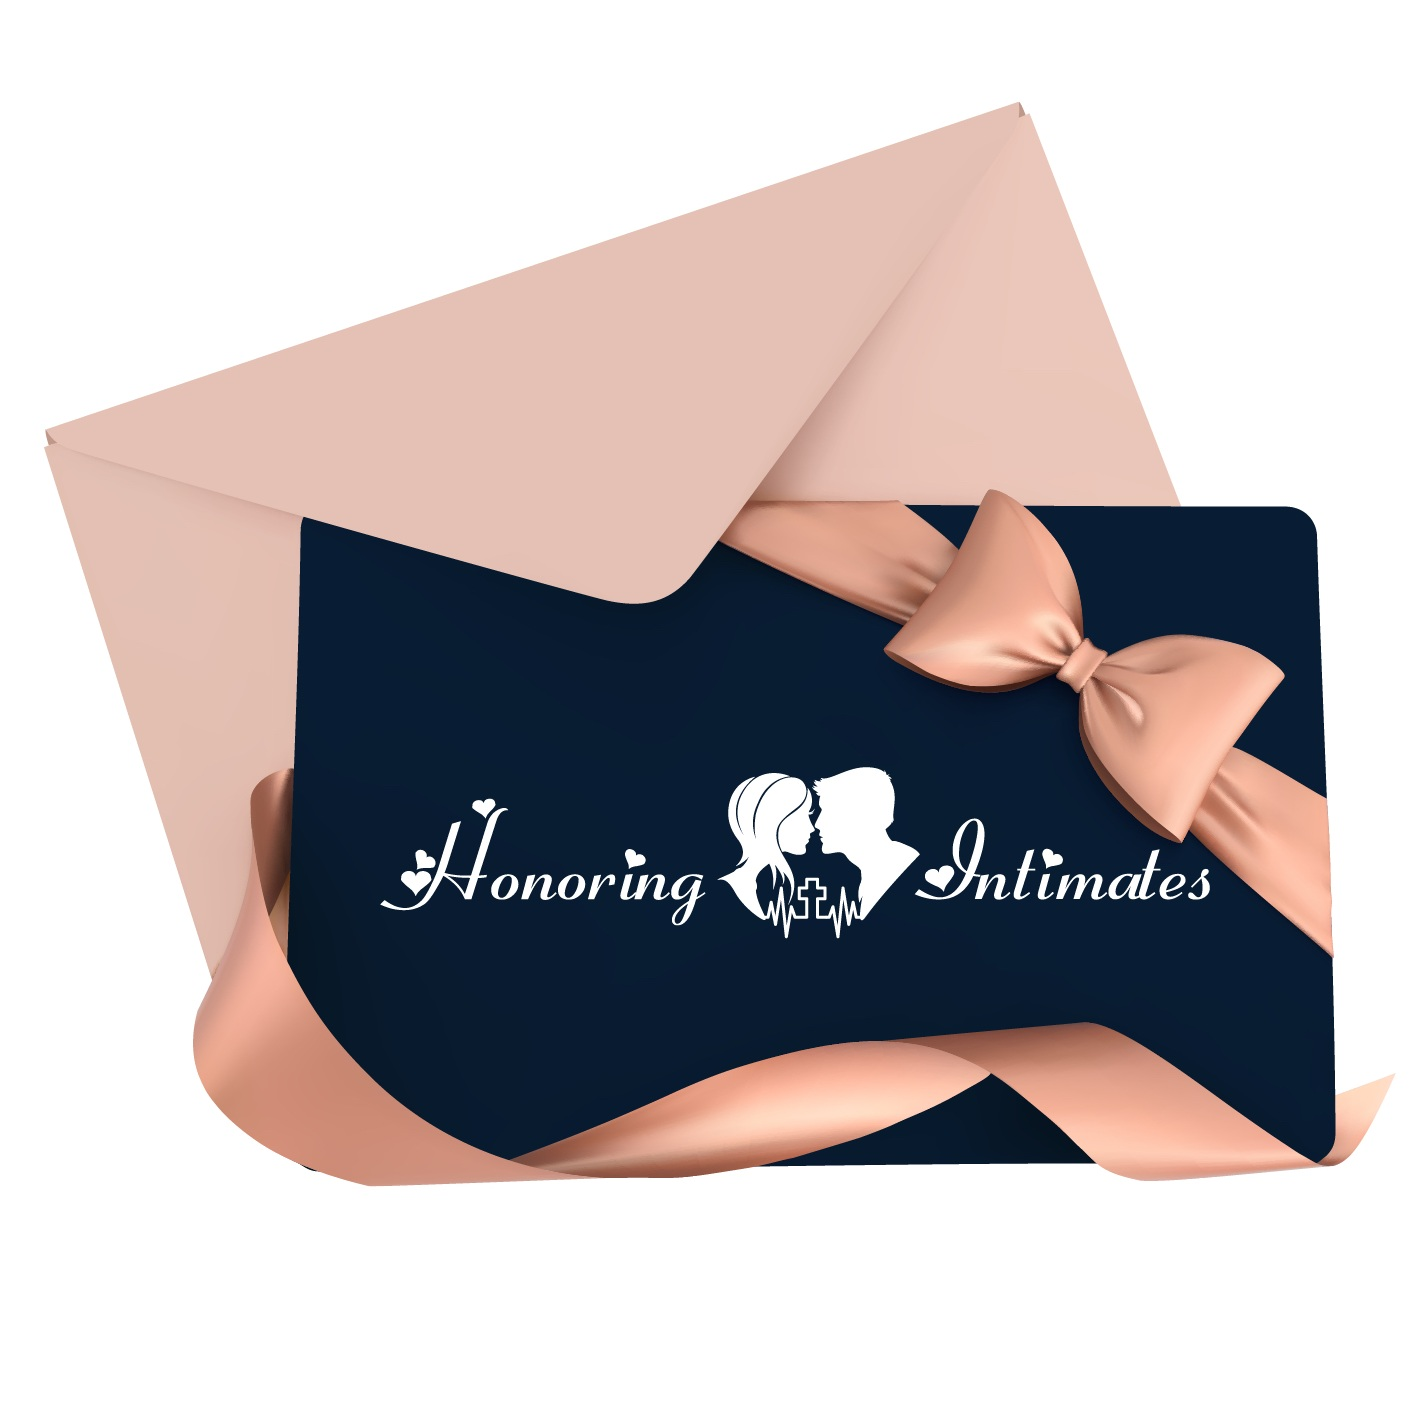 Honoring Intimates E-Gift Card - Gift cards don't expire and can be used with discounts!